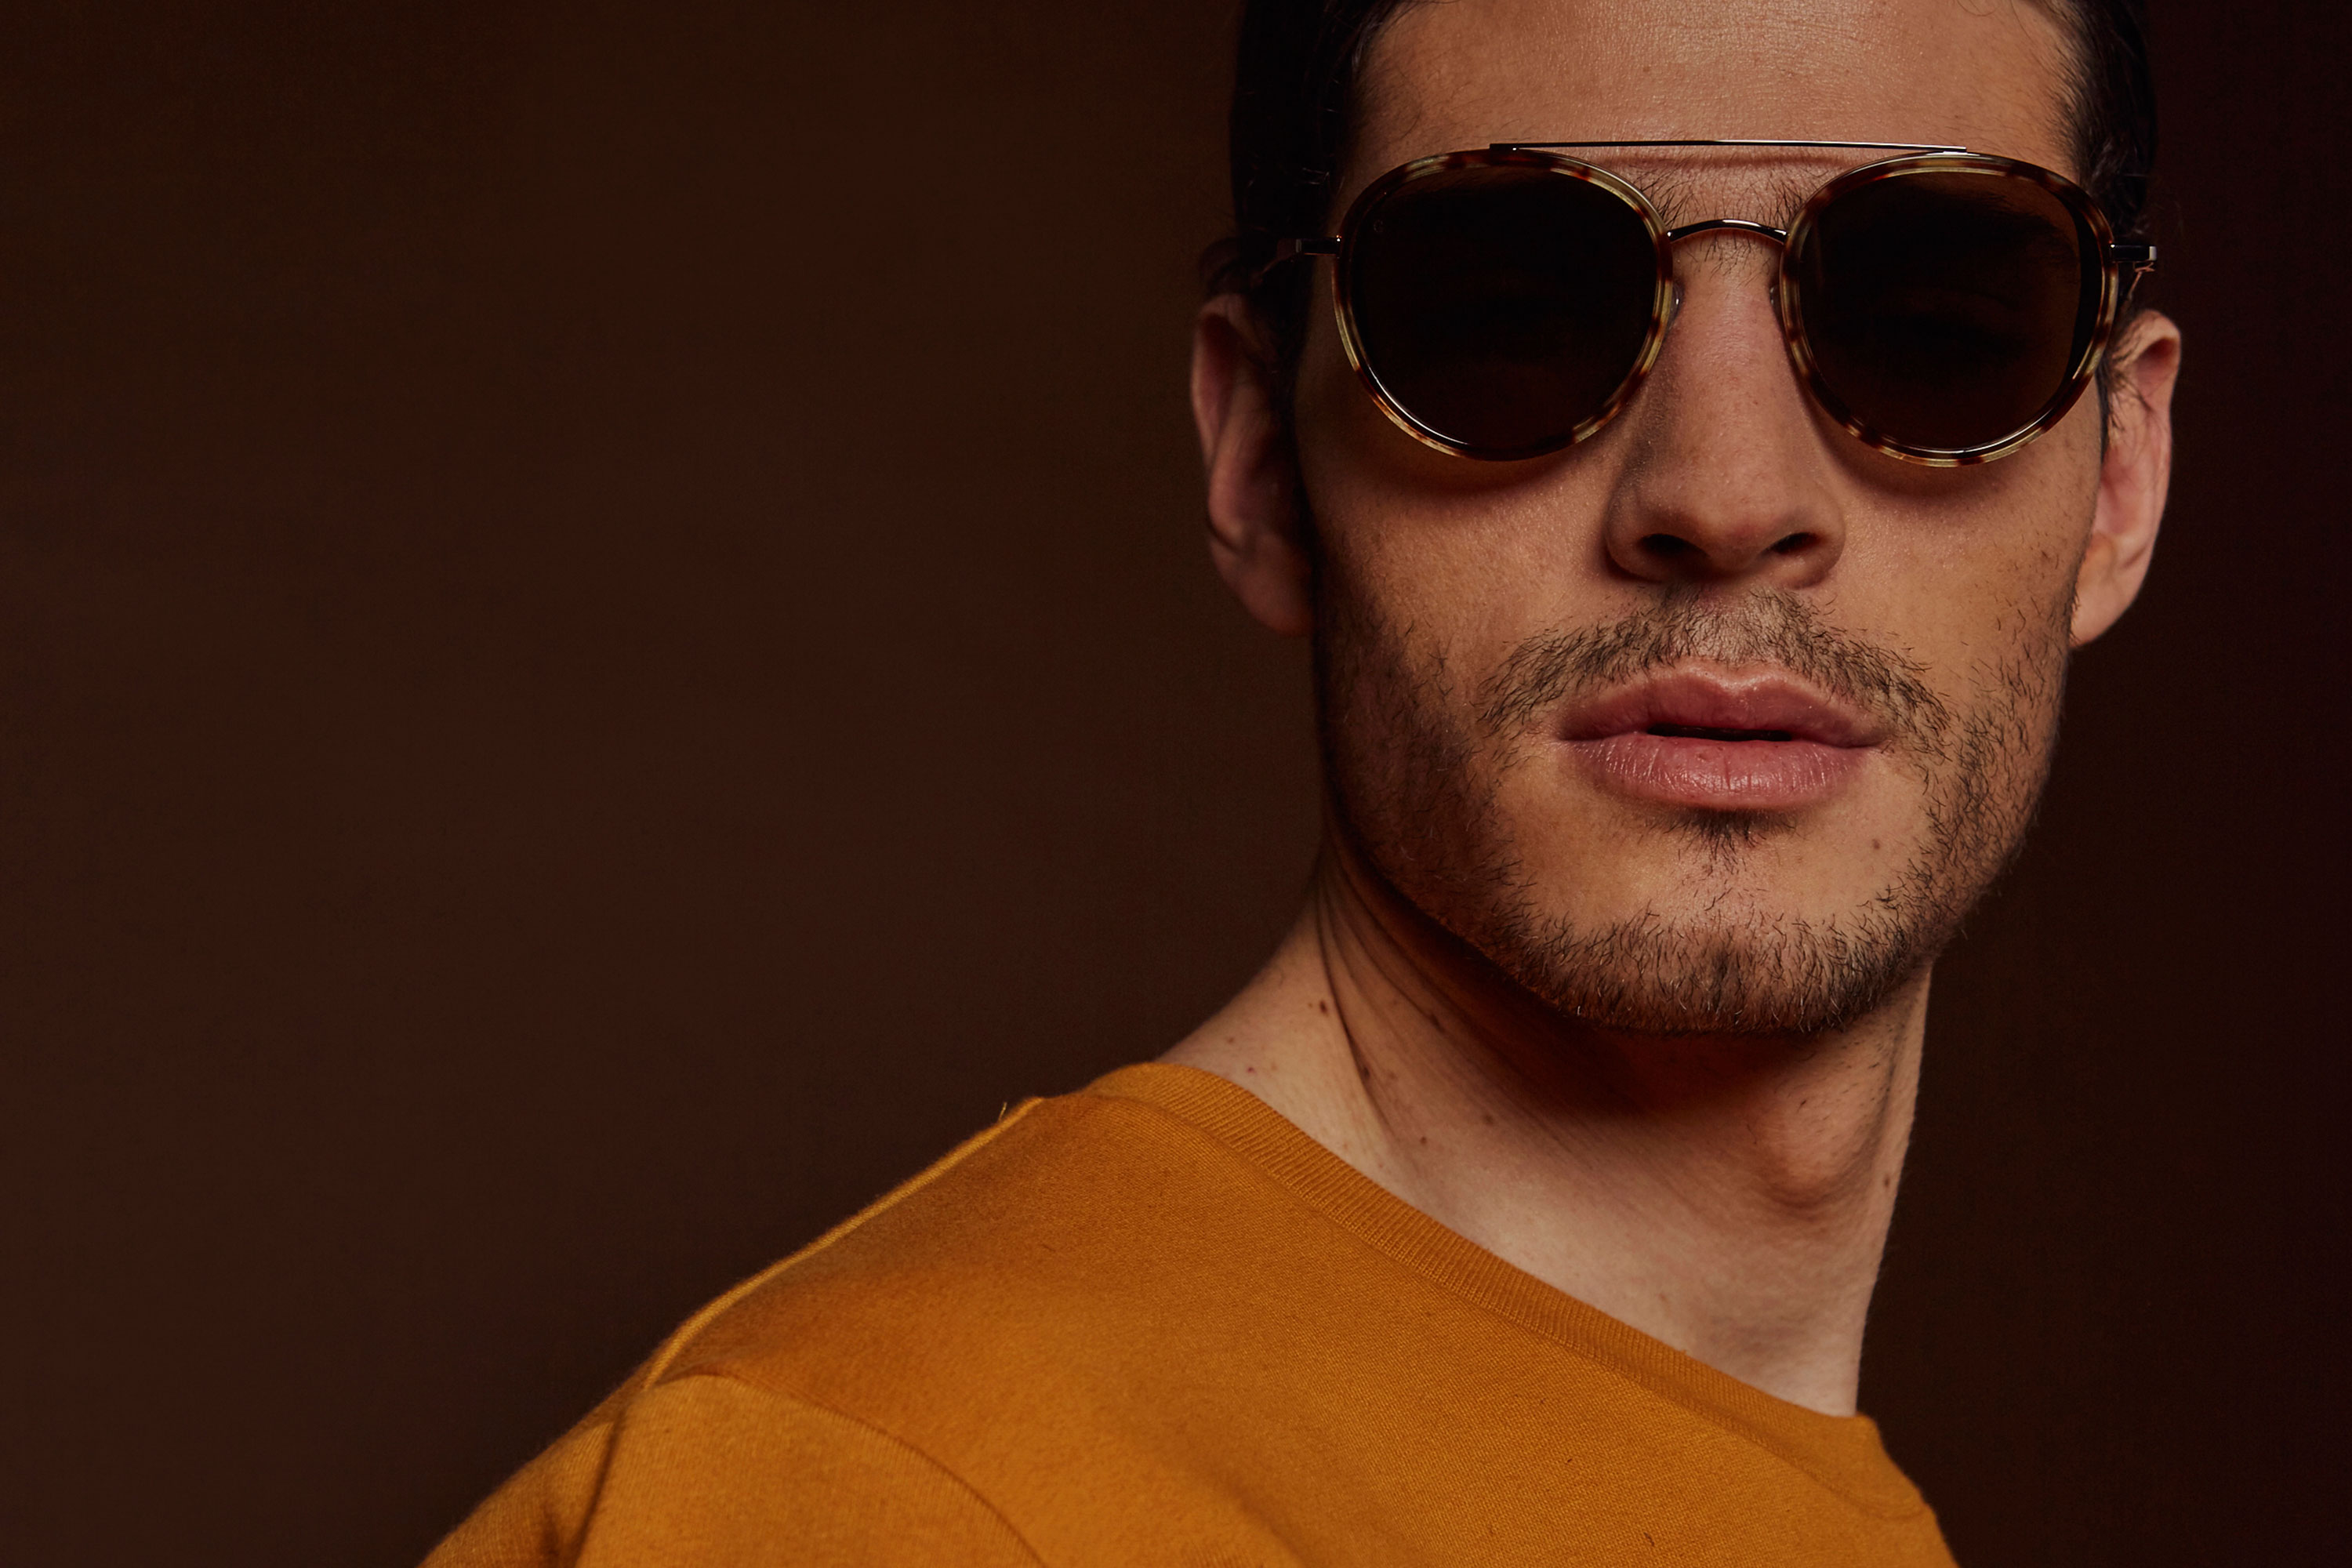 Firenze acetate/metal aviator tortoise sunglasses by GIGI Studios